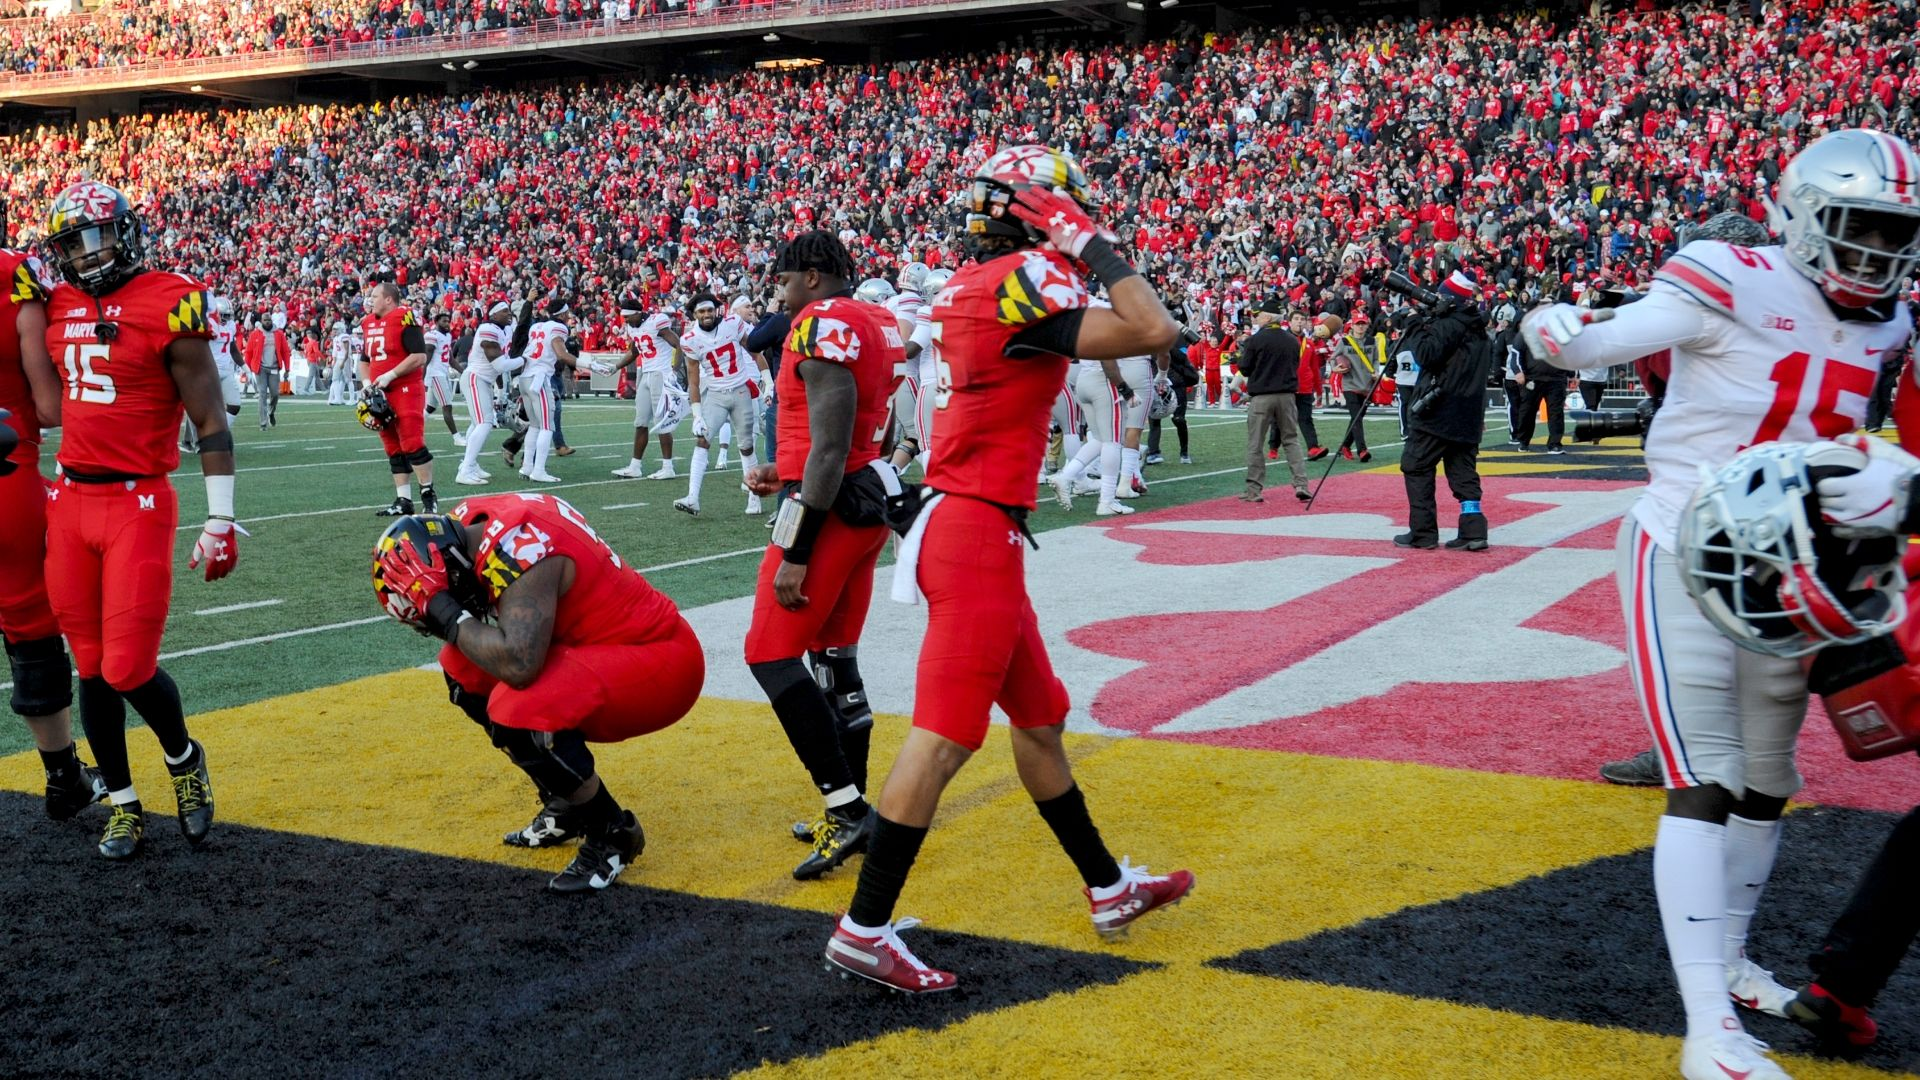 Ohio State survives Maryland in epic OT win